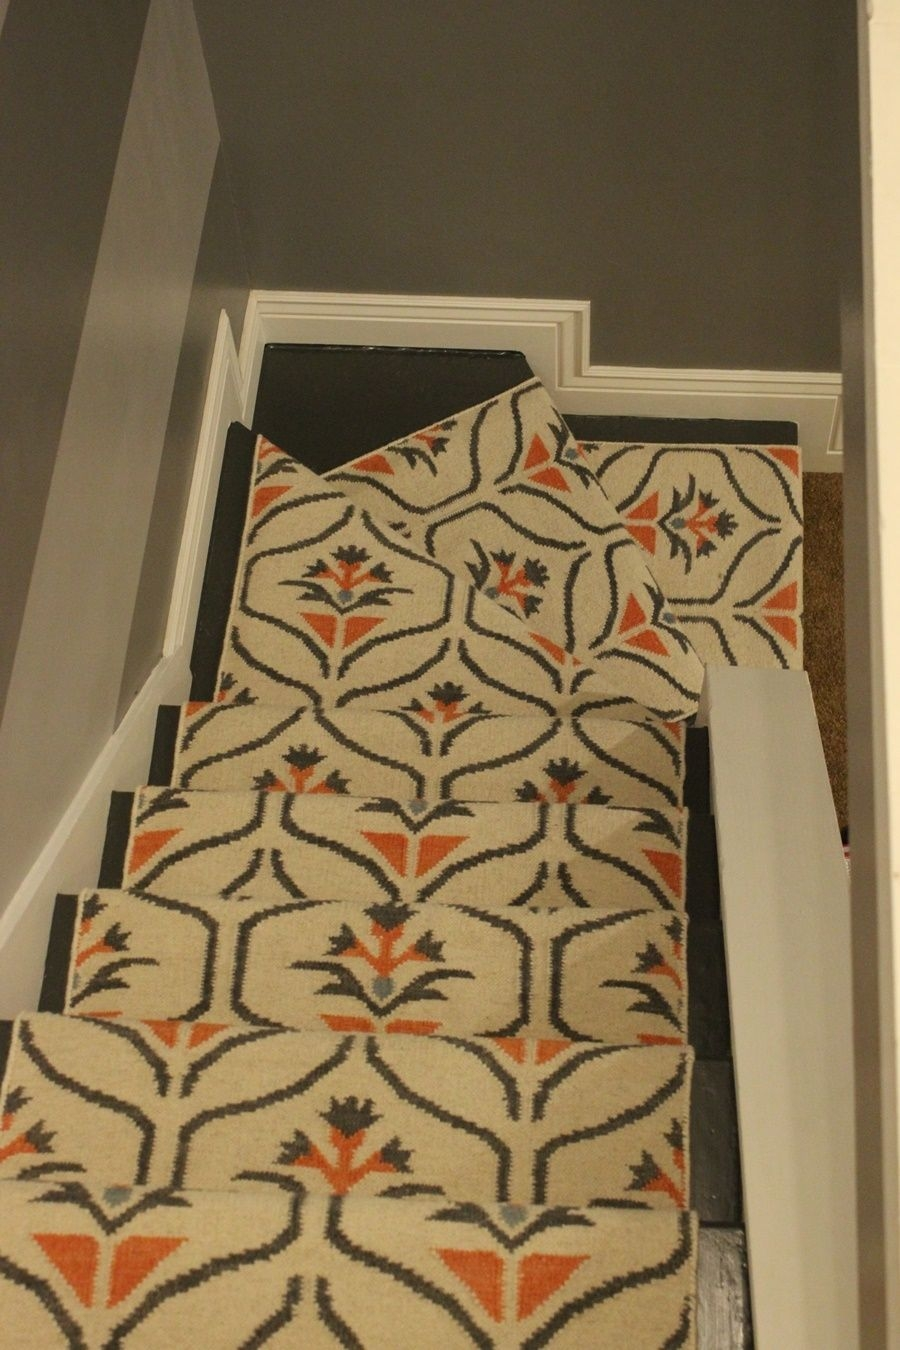 Update Your Staircase How To Remove And Install Carpet On The Stairs | Floral Carpet For Stairs | Modern | Brown Pattern | Pattern | Laminate | Diamond Pattern